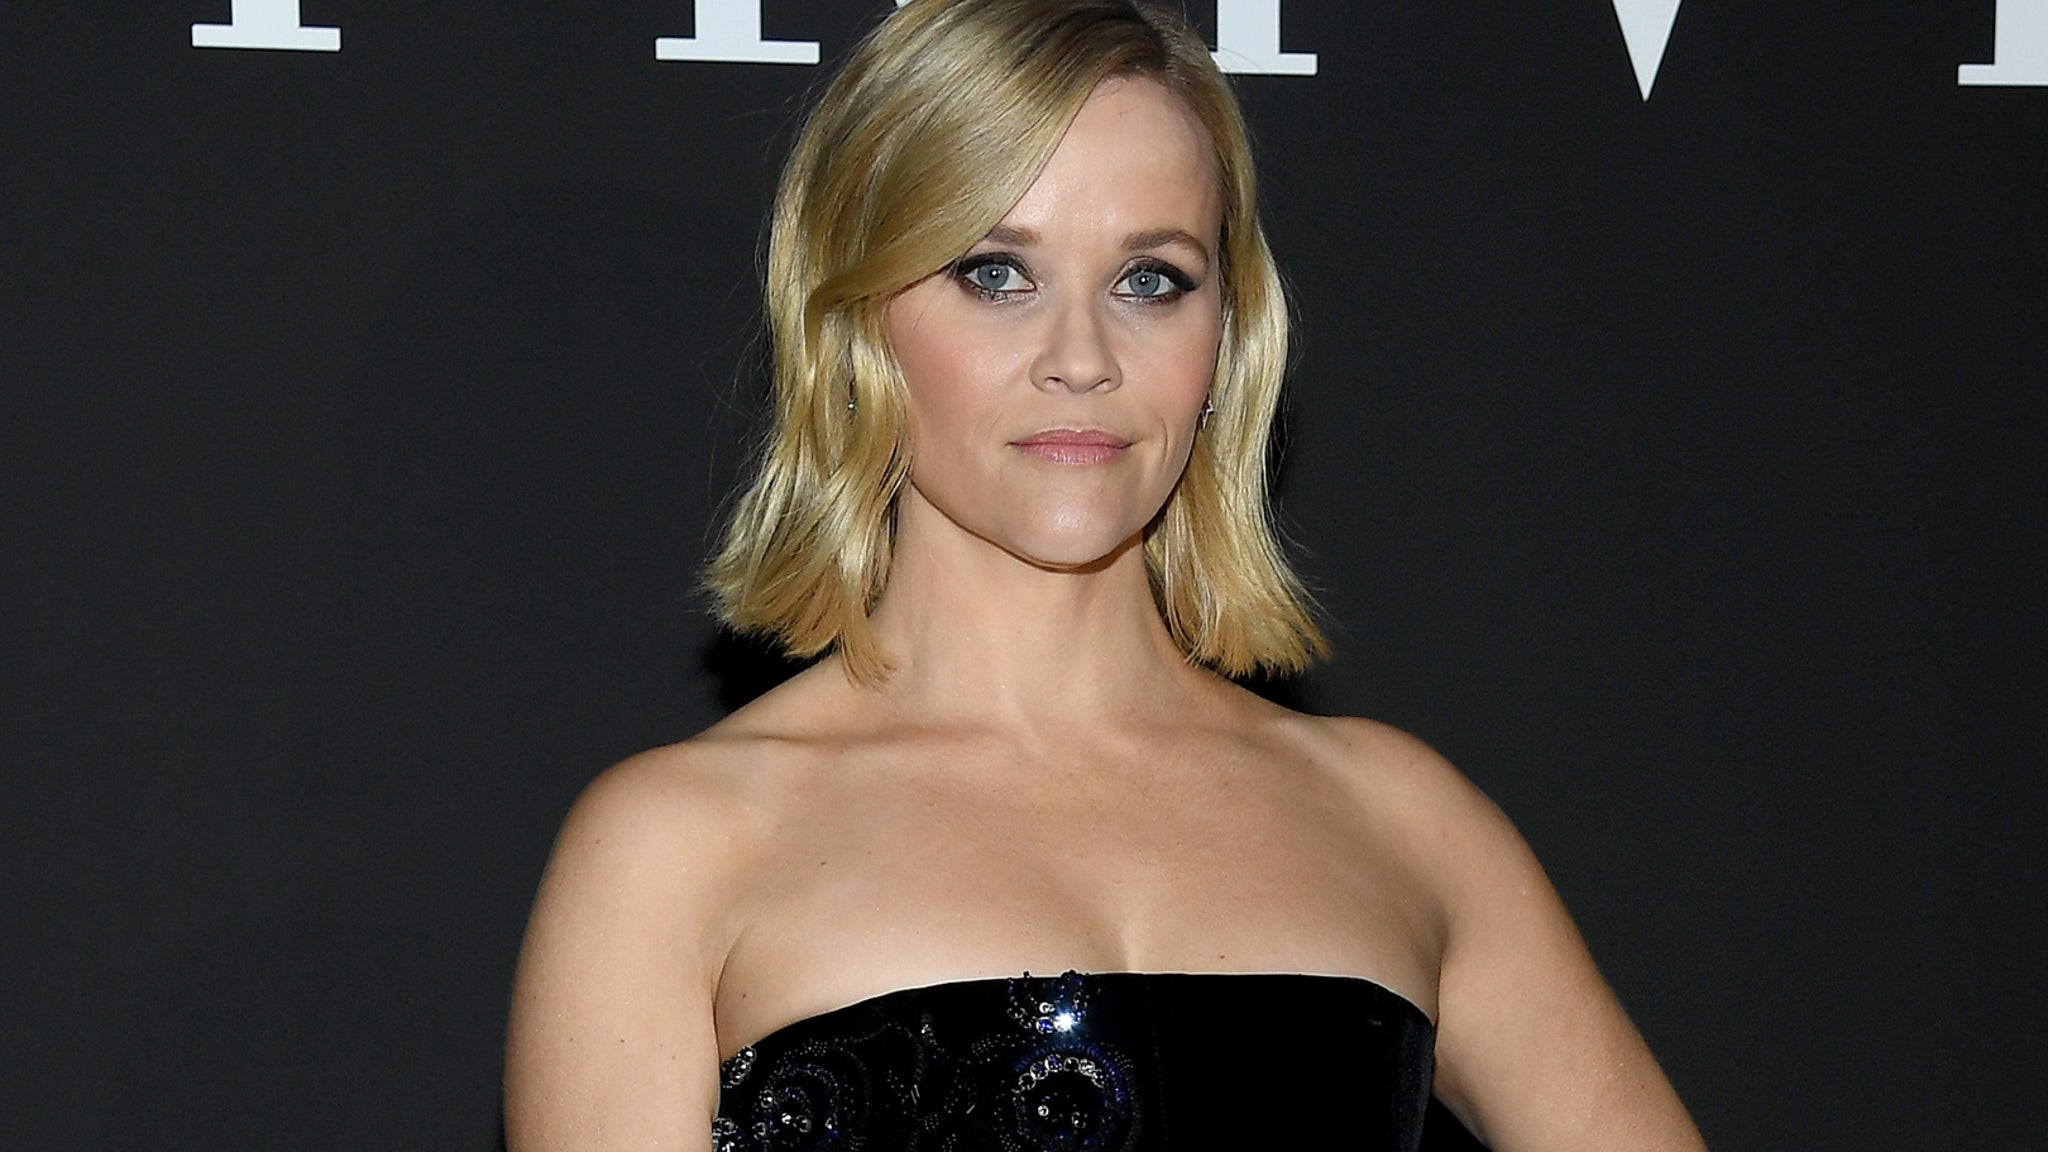 Why Reese Witherspoon Hypnosis for a Wild Role